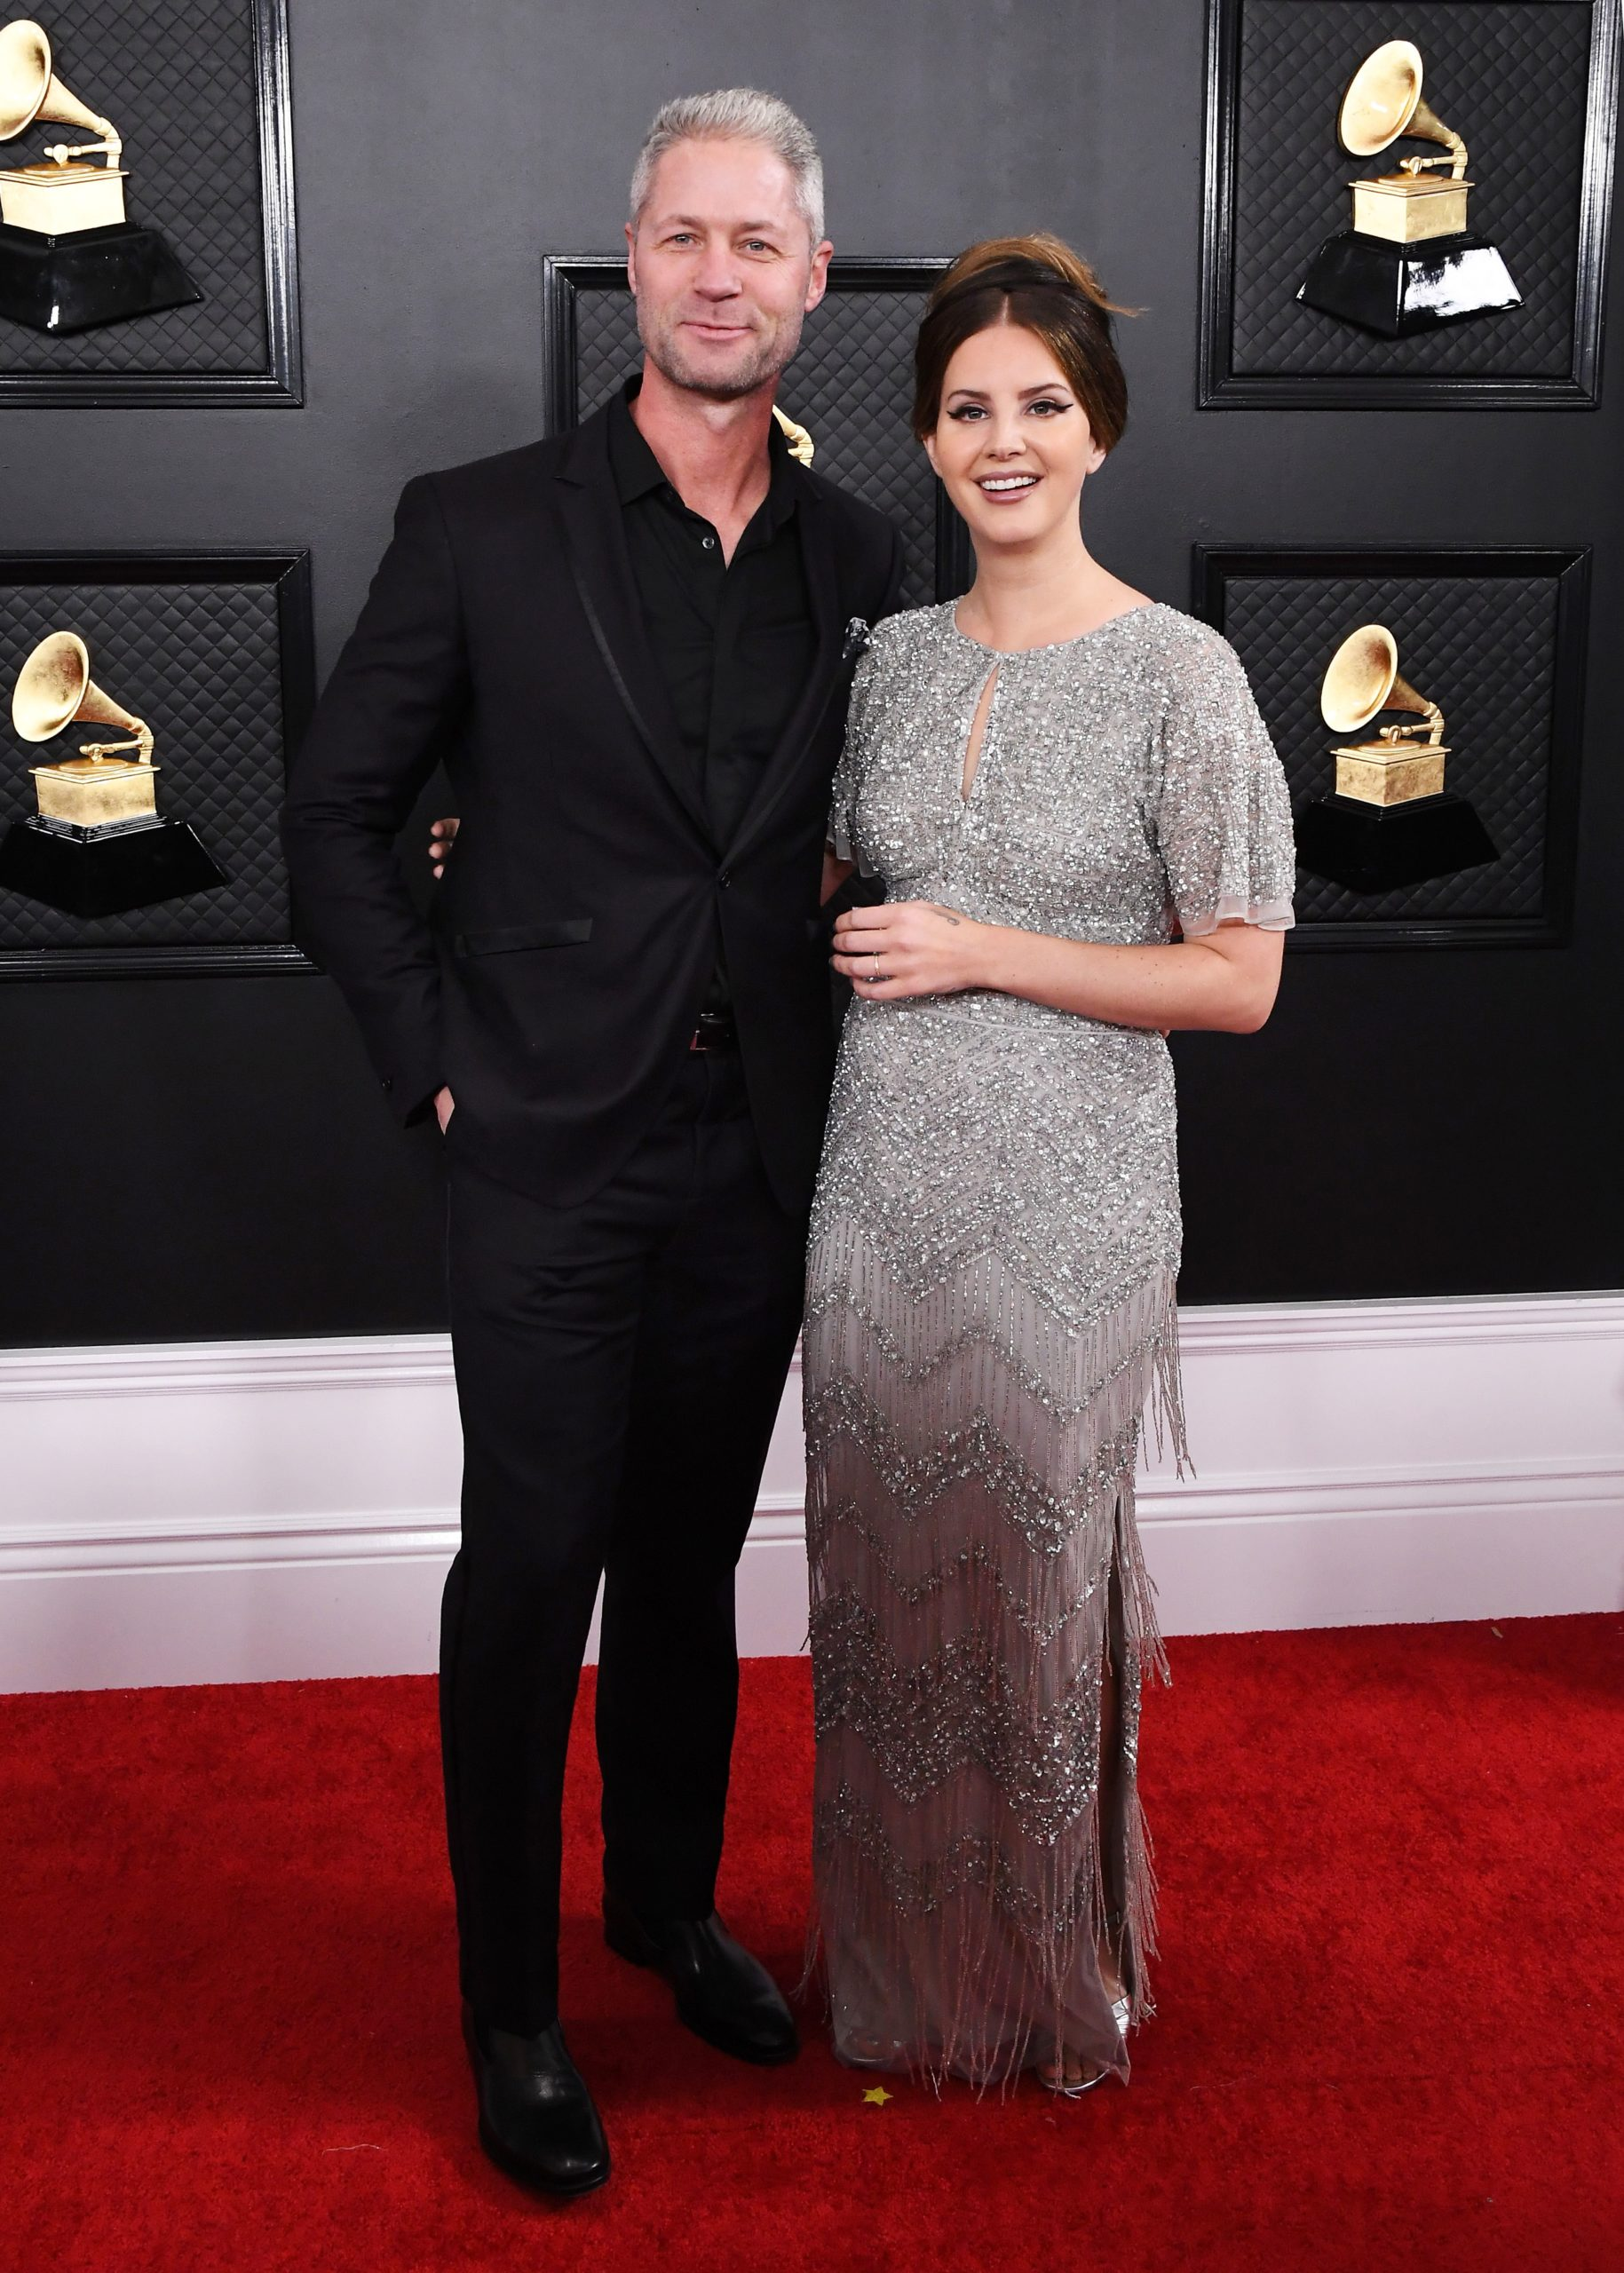 Lana Del Rey at the Grammys 2020 (Photo credit: Getty Images)